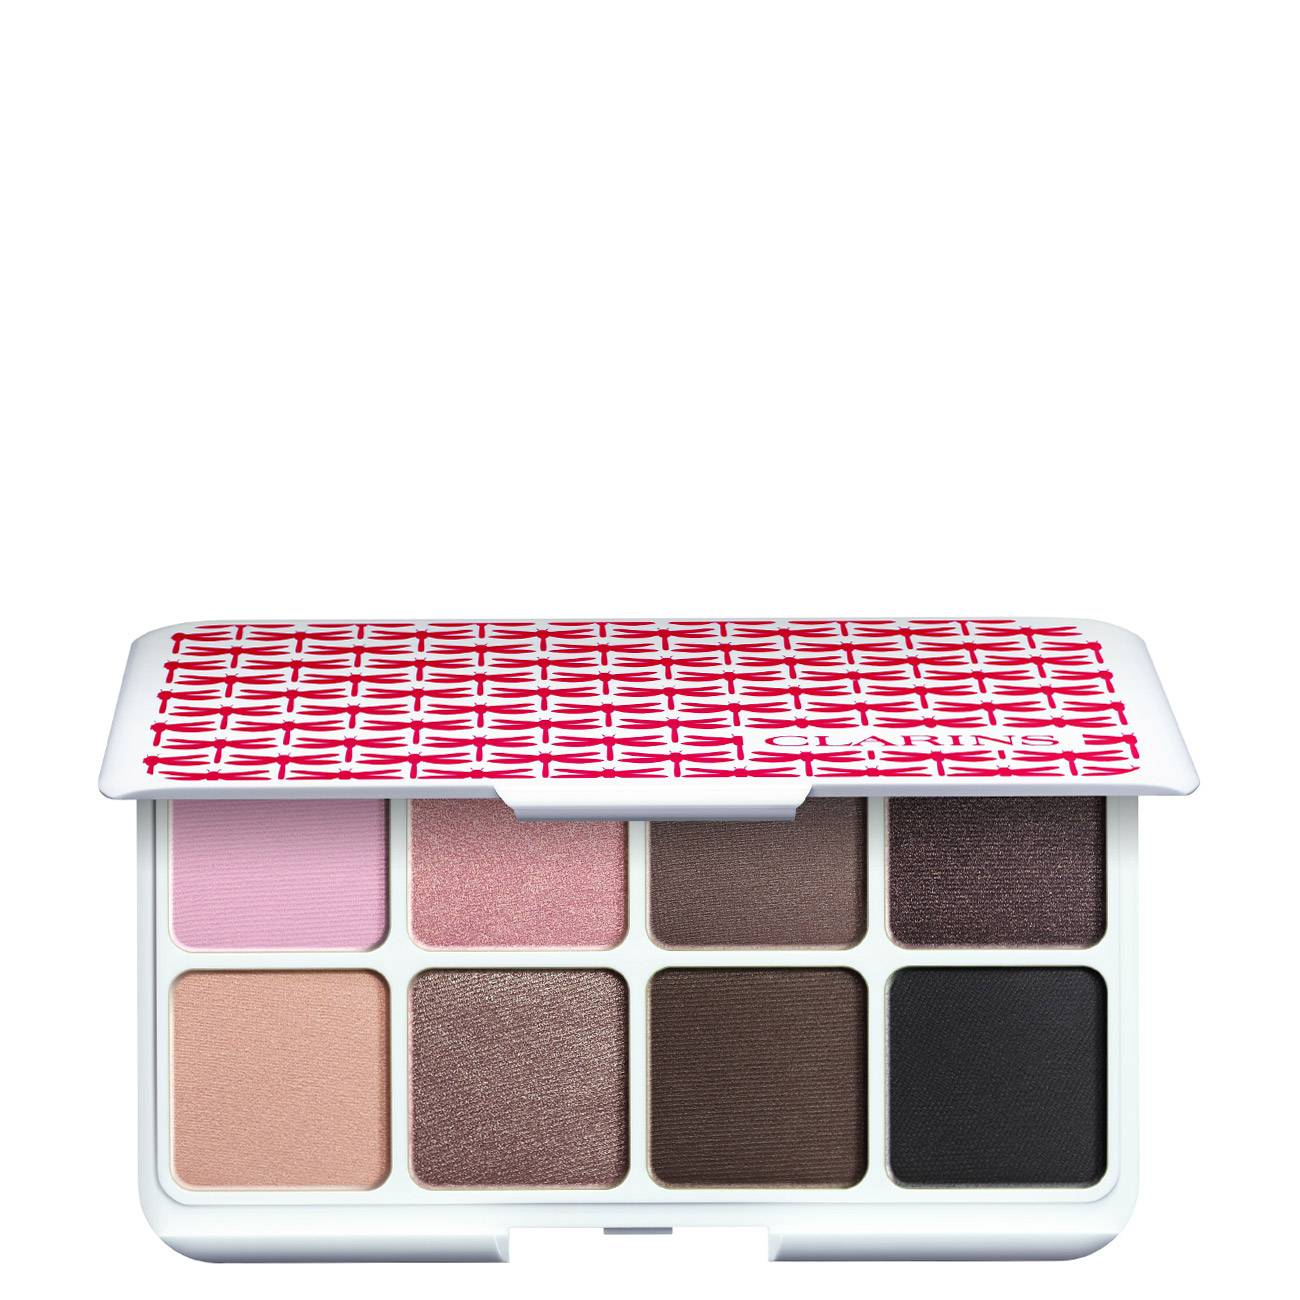 PALETTE EYES MINI TRAVEL EXCLUSIVE 10 G